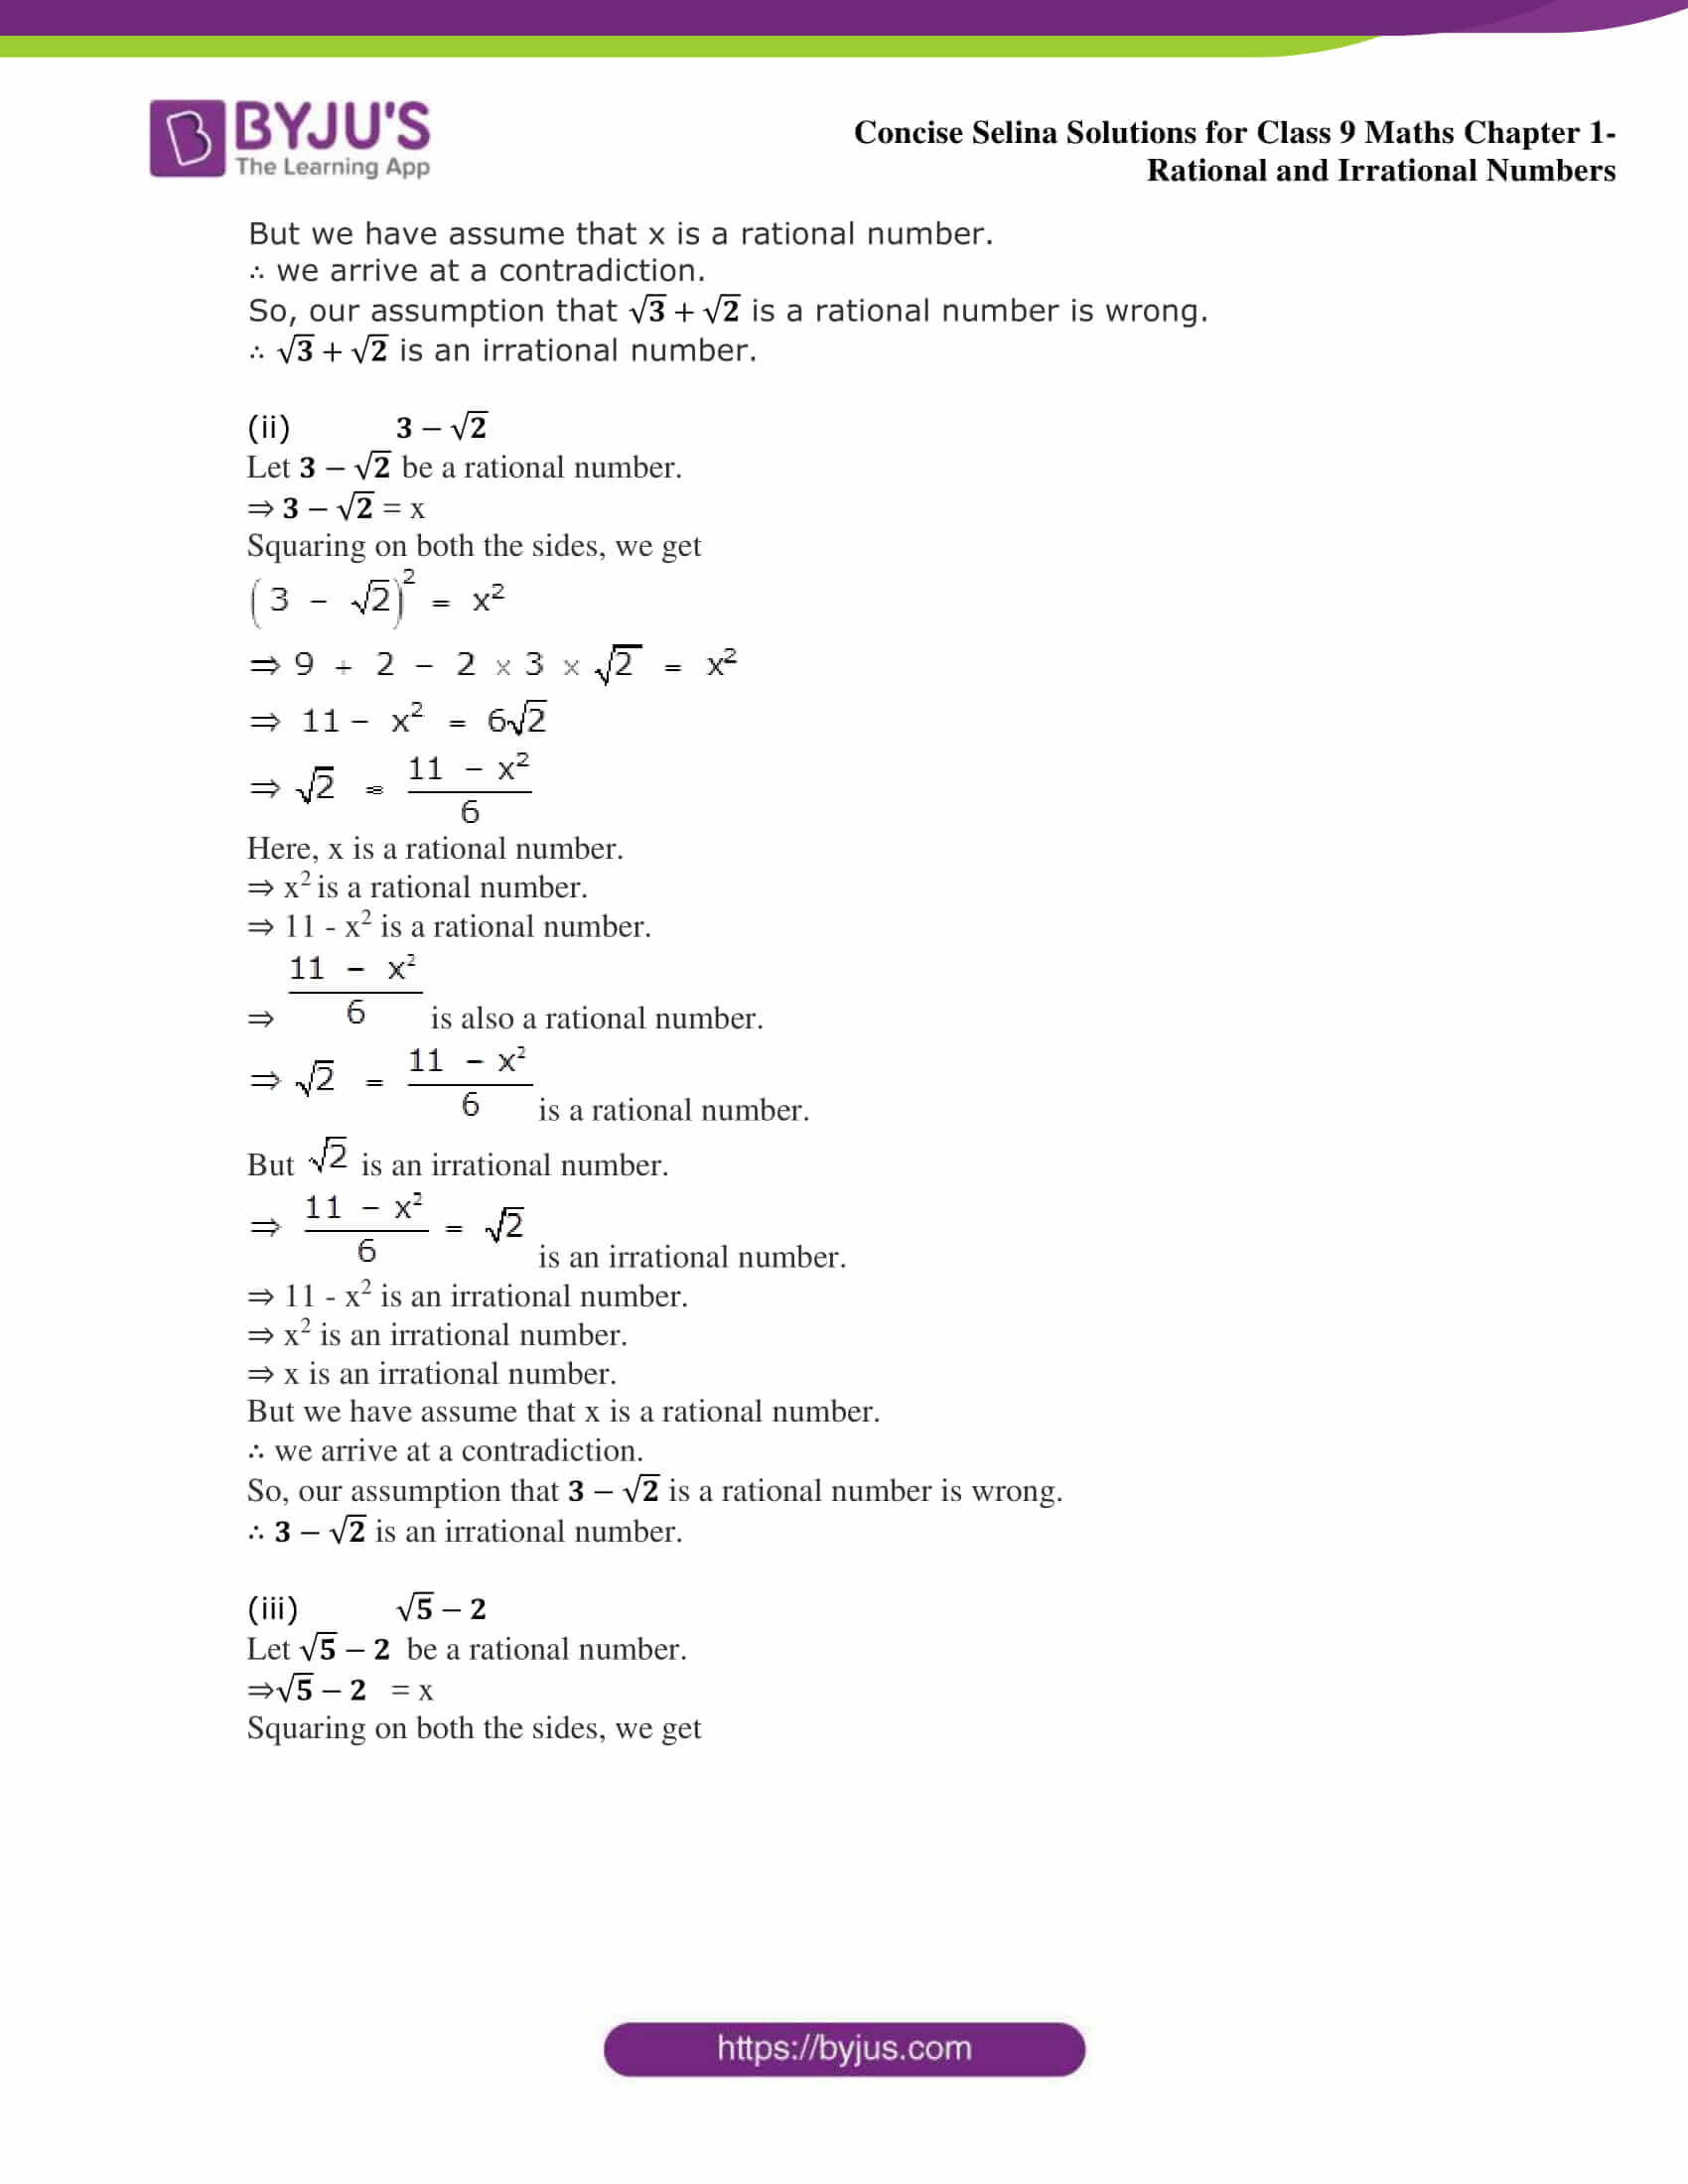 Selina Solutions Class 9 Maths Chapter 1 Rational And Irrational Numbers part 11